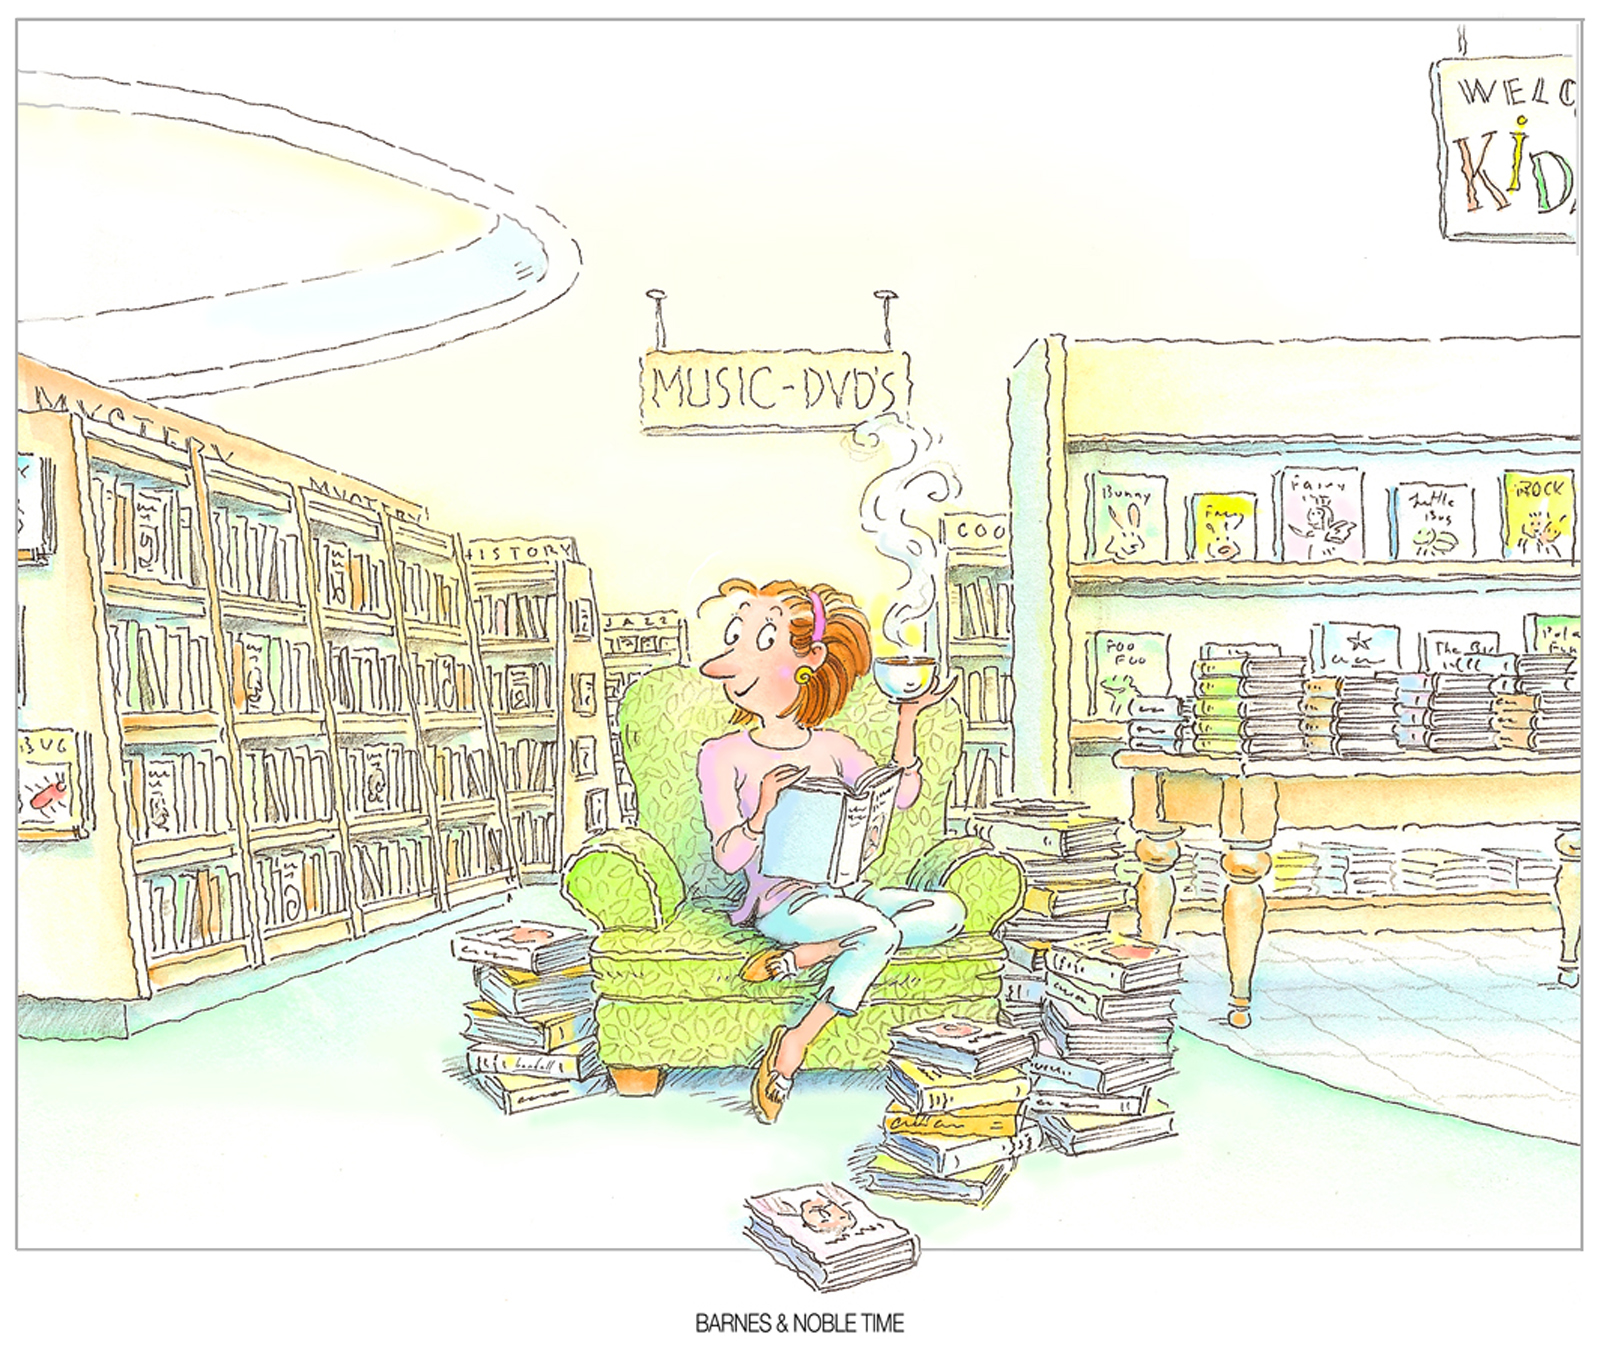 Norm Bendell / Barnes & Noble Time / Bookstore Promo